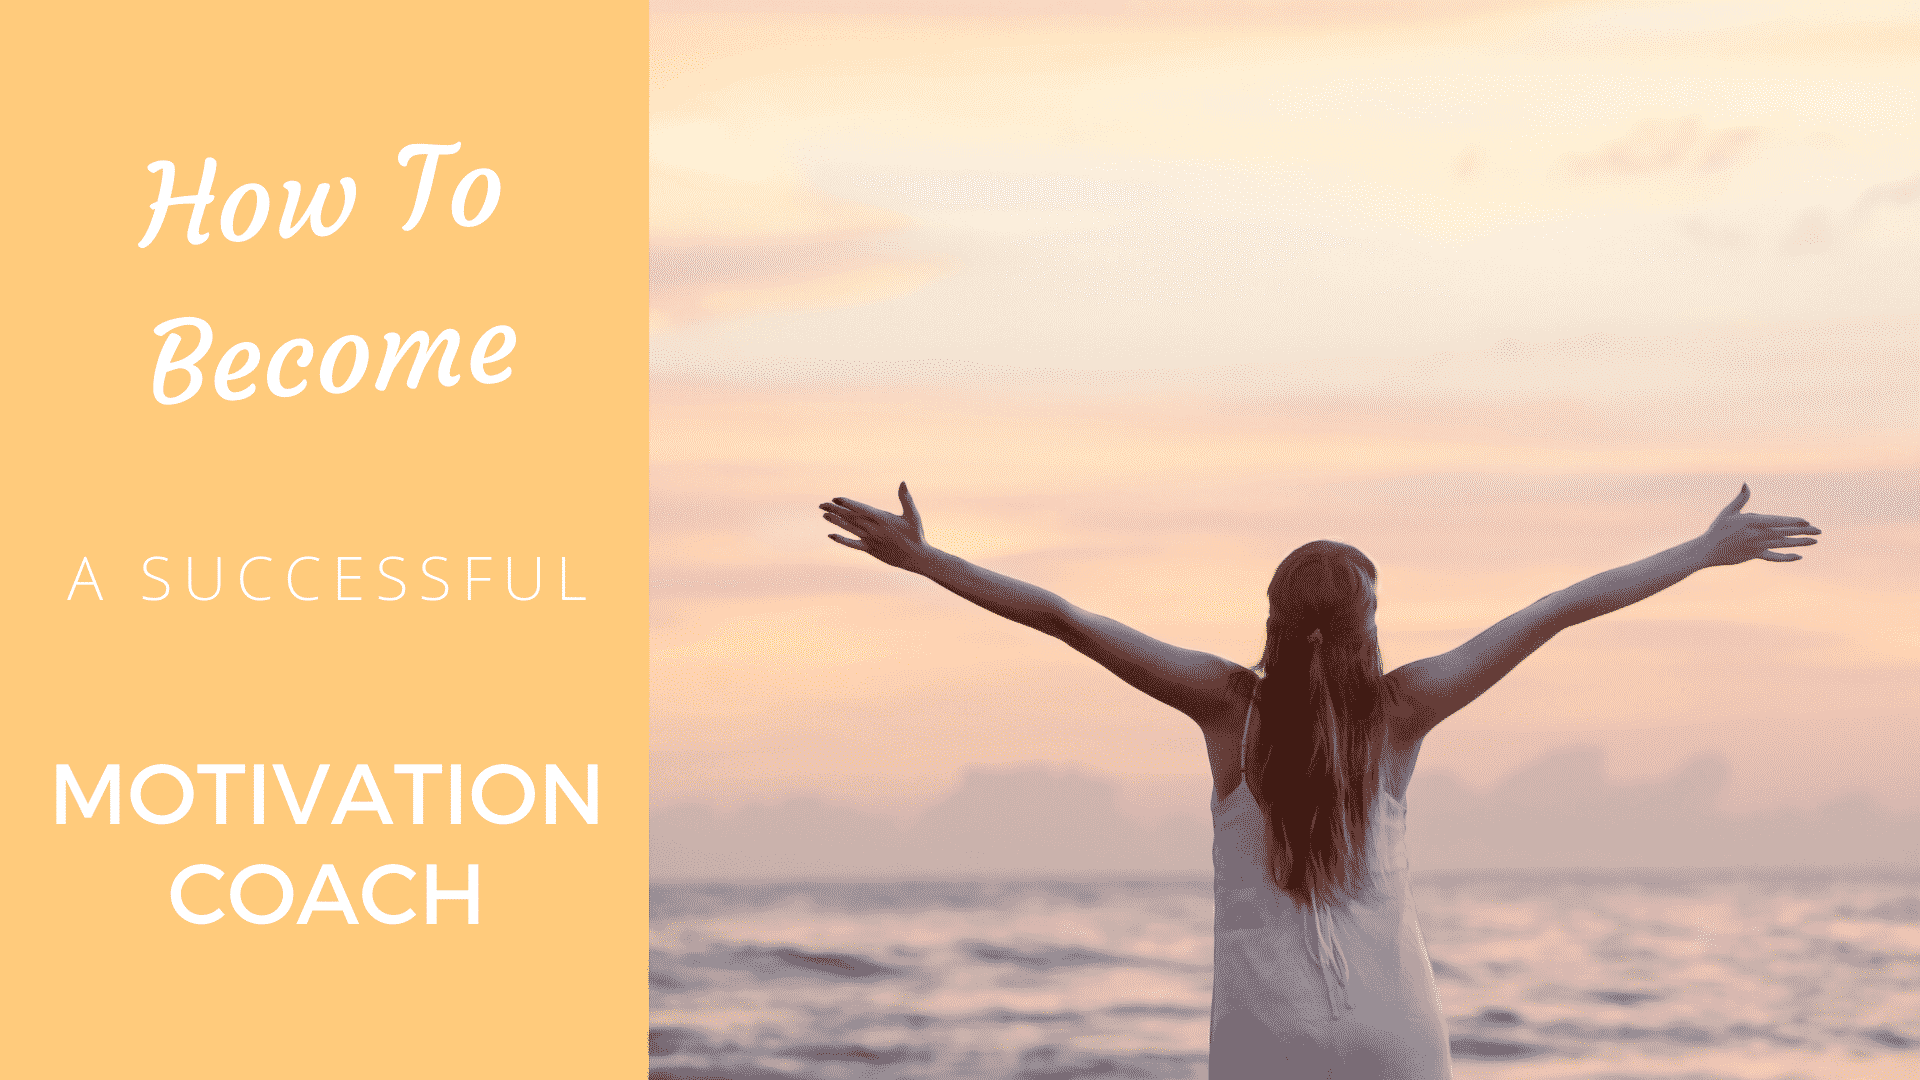 How to Become a Successful Motivation Coach